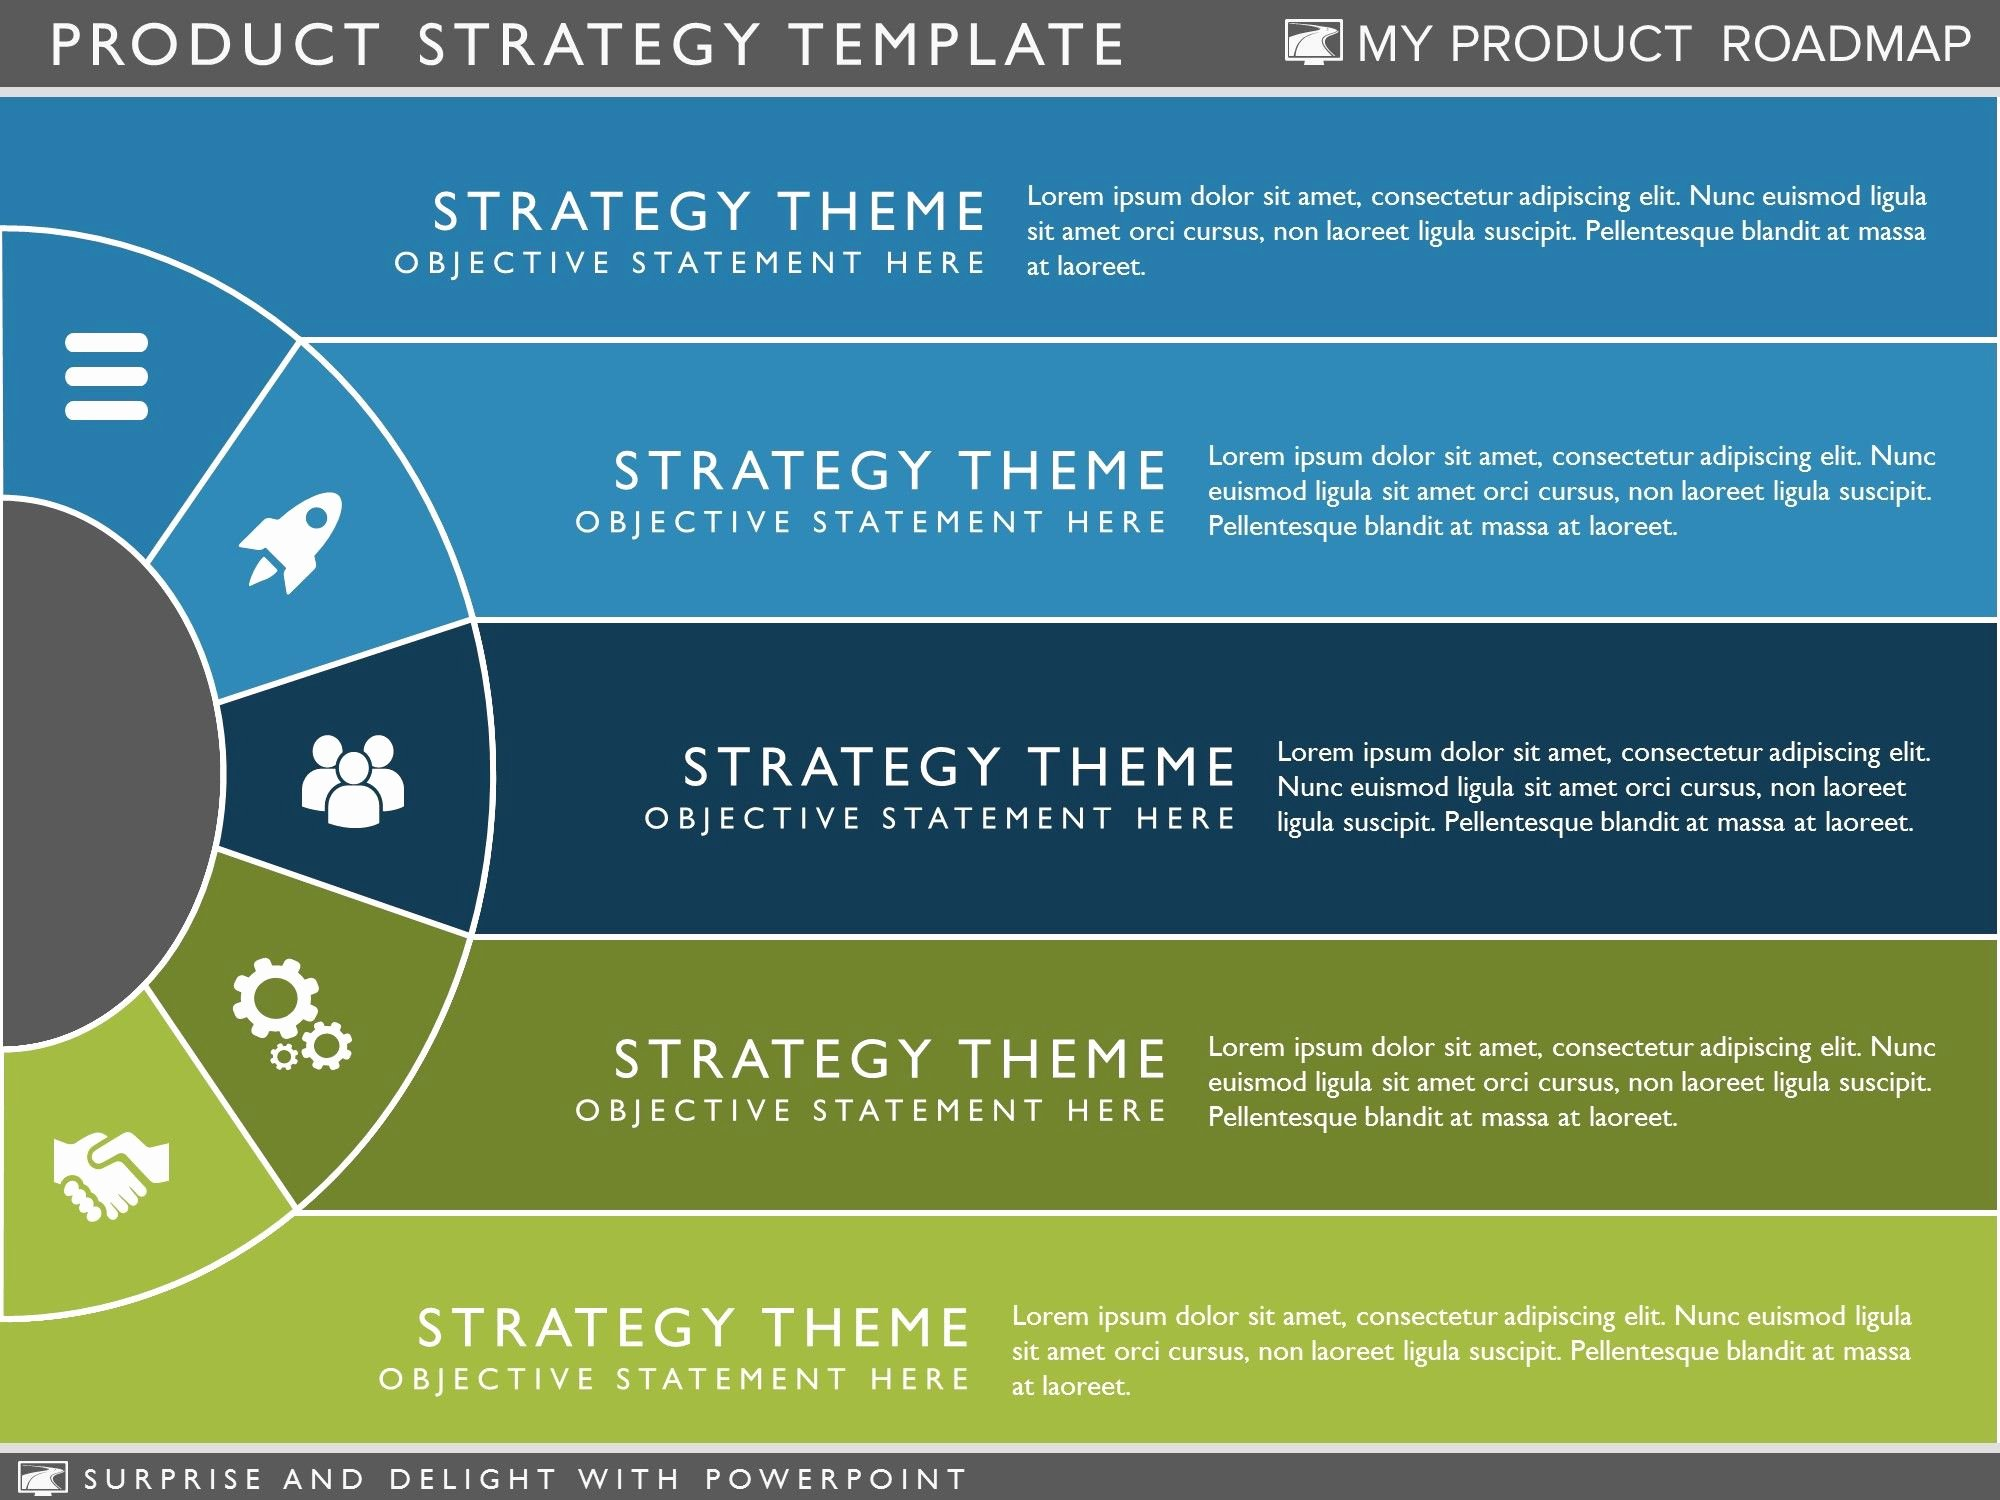 Strategy Plan Template Powerpoint Awesome Product Strategy Template Clickfunnel Hacks